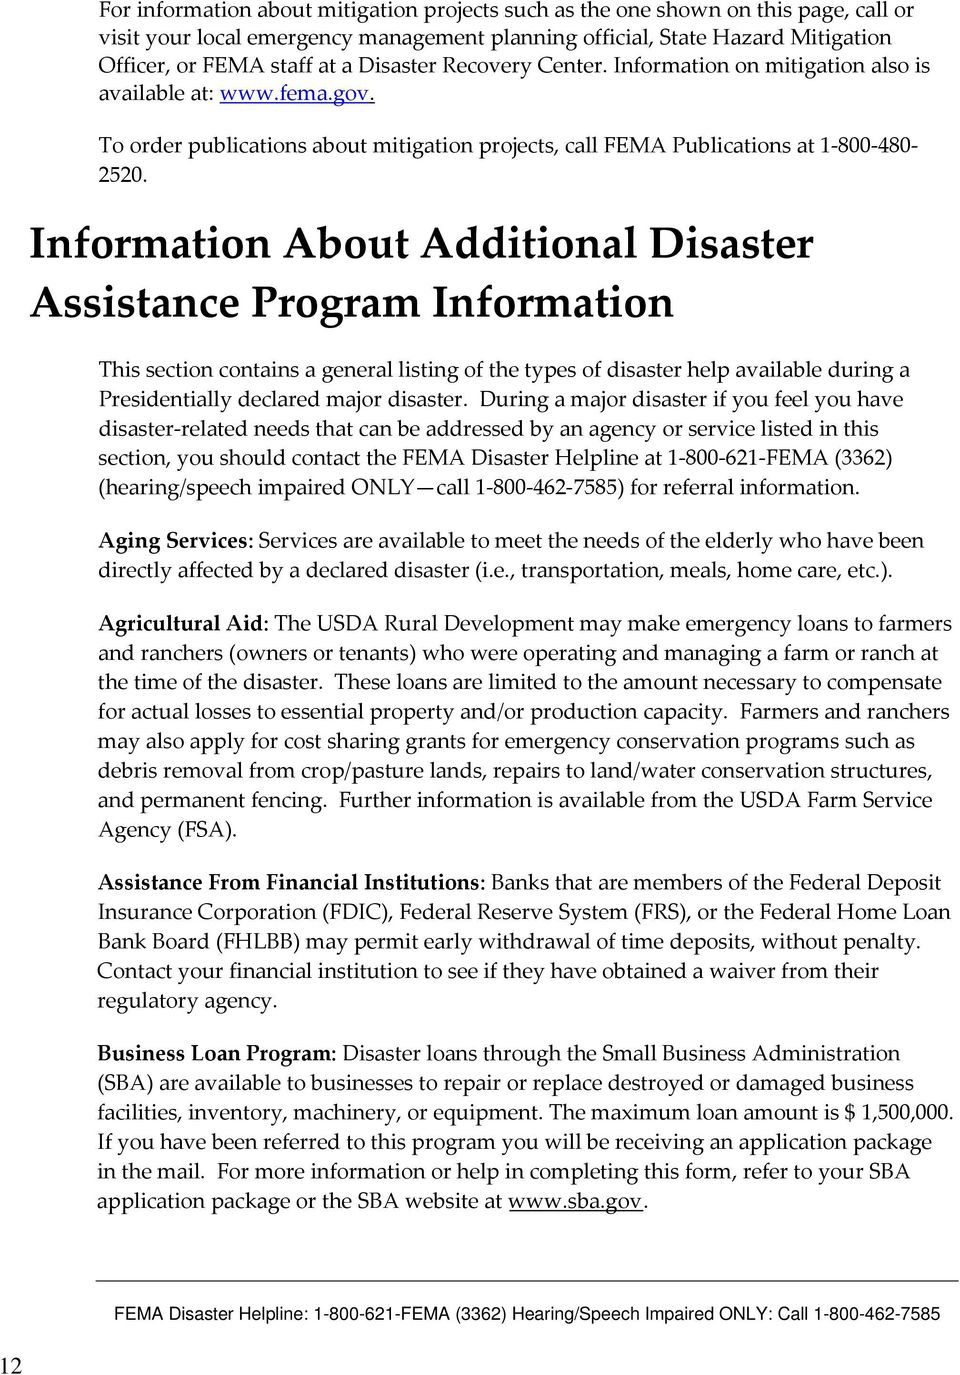 Information About Additional Disaster Assistance Program Information This section contains a general listing of the types of disaster help available during a Presidentially declared major disaster.